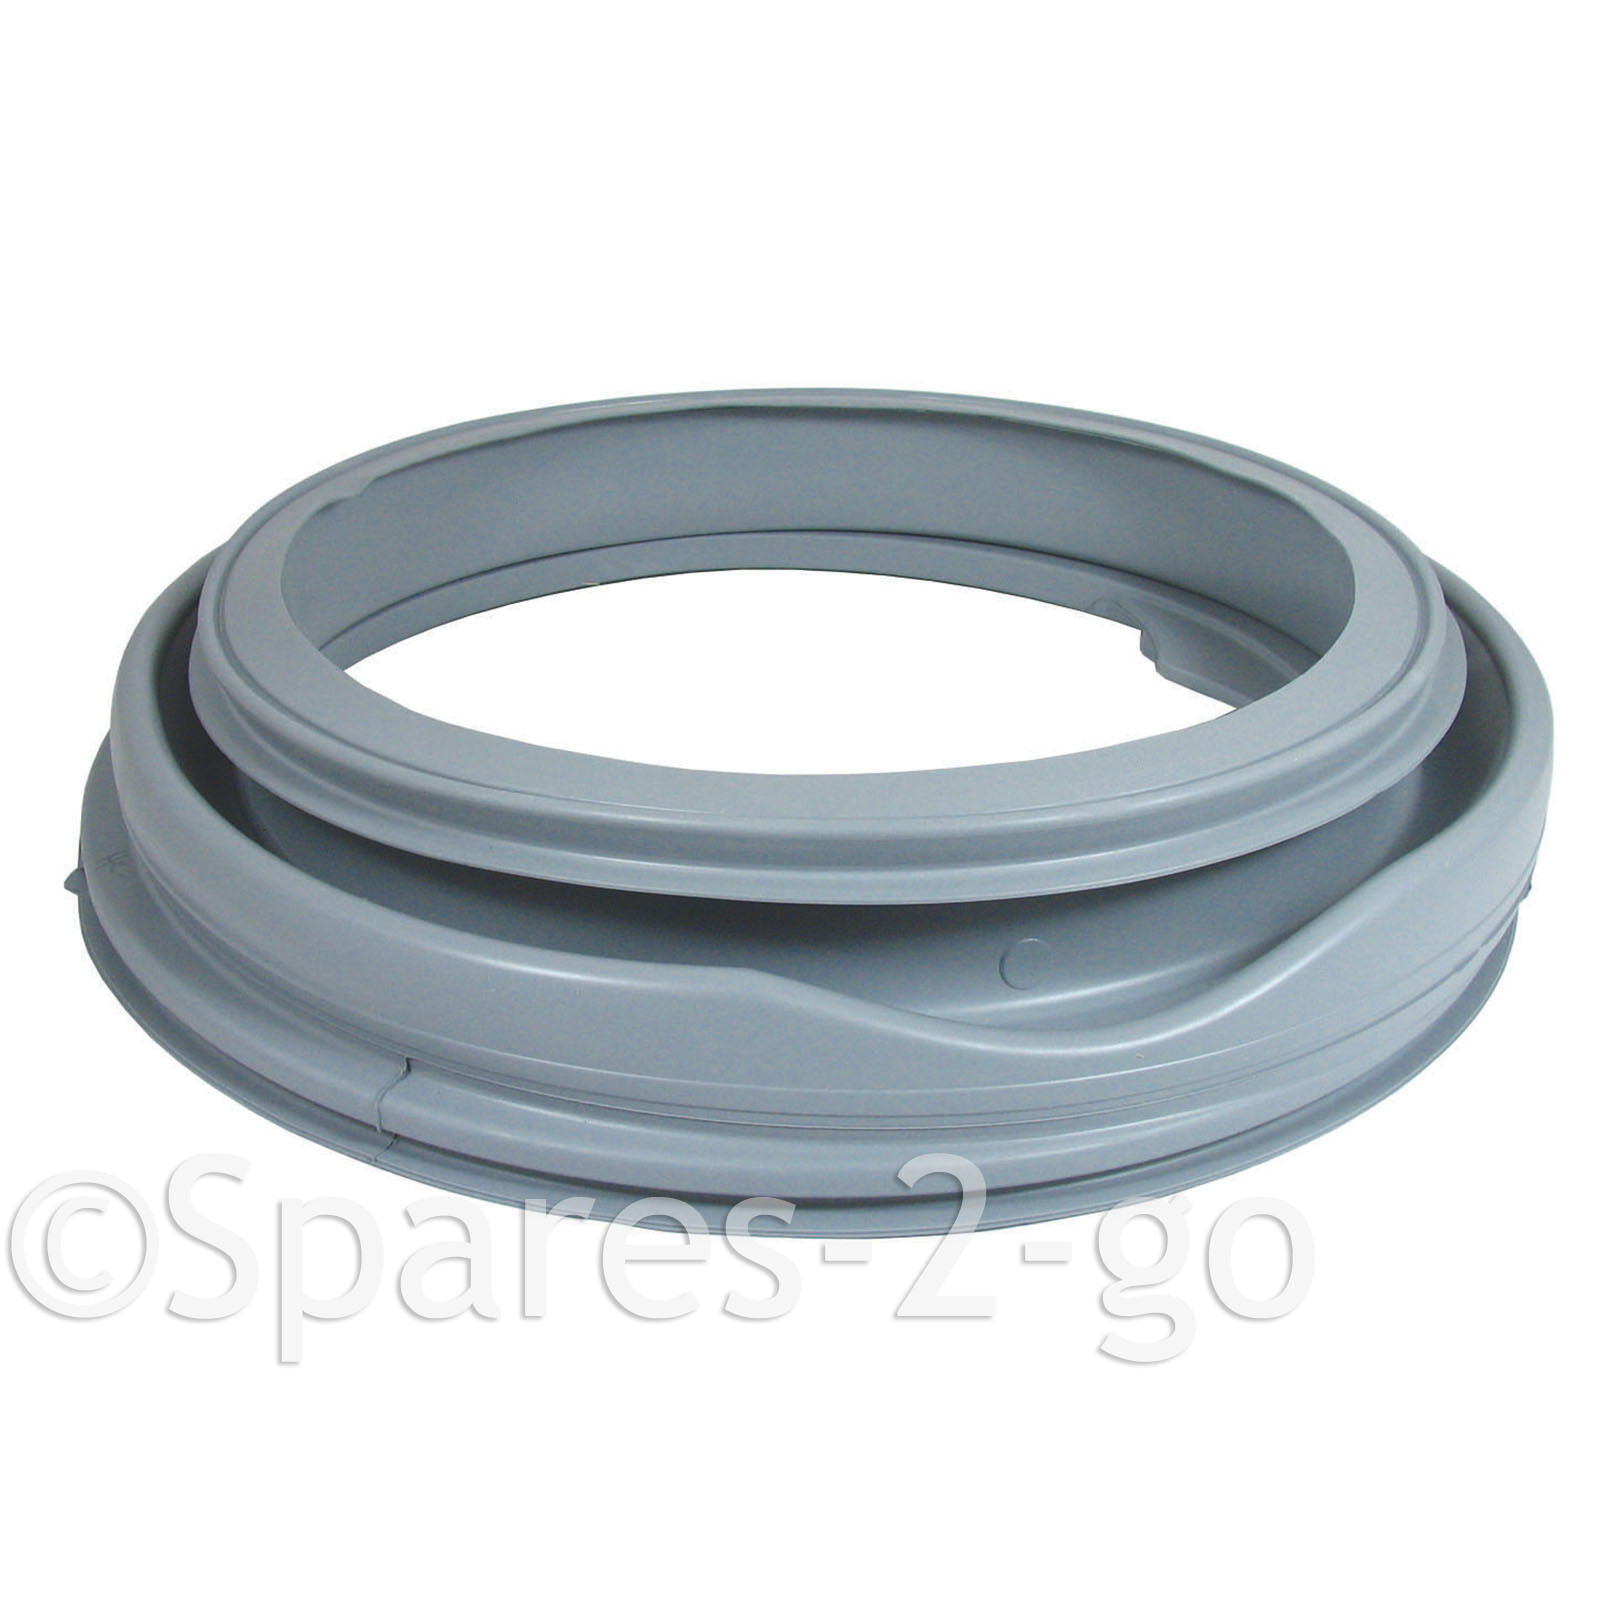 WHIRLPOOL Washing Machine Door Seal Rubber Gasket Boot - FITS OVER 100 MODELS